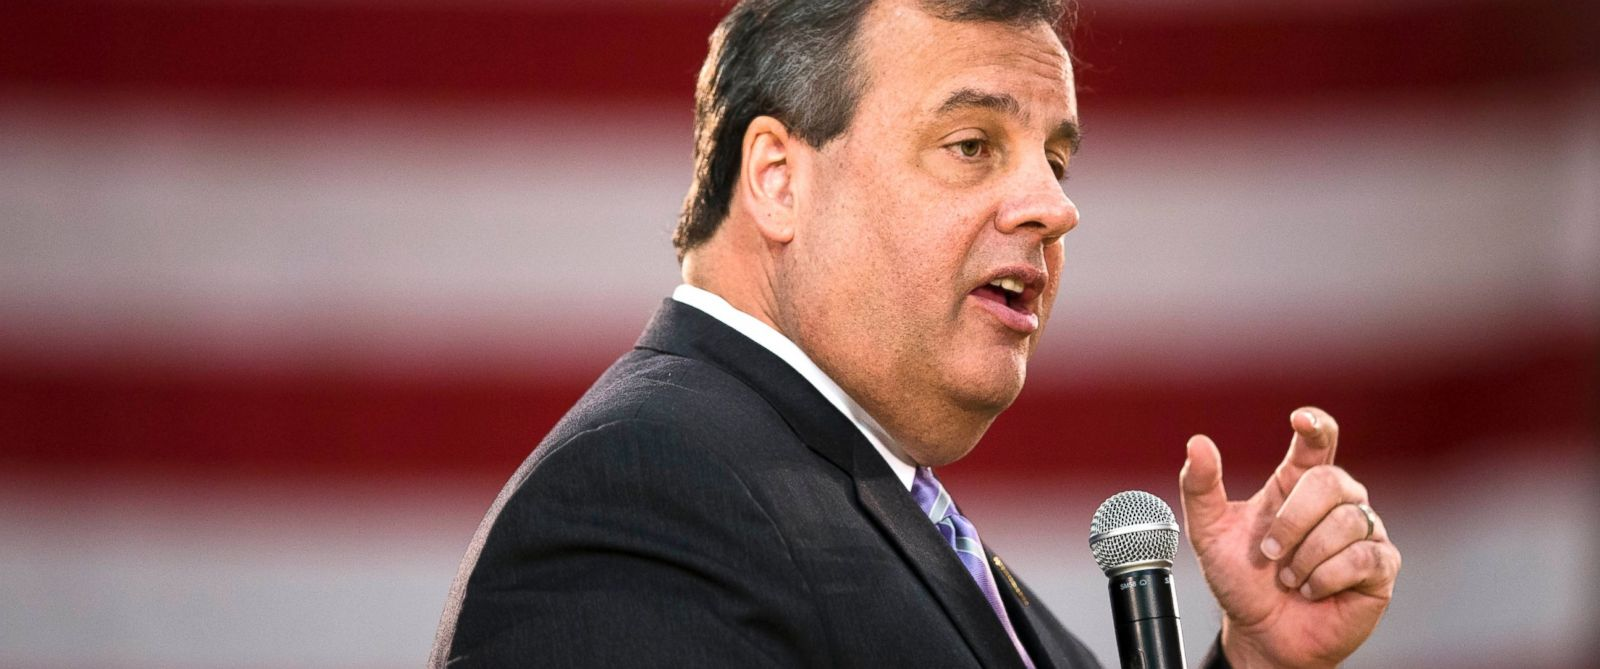 PHOTO: New Jersey Gov. Chris Christie speaks at a town hall meeting, March 13, 2014, at the YMCA of Burlington County, in Mount Laurel, N.J.